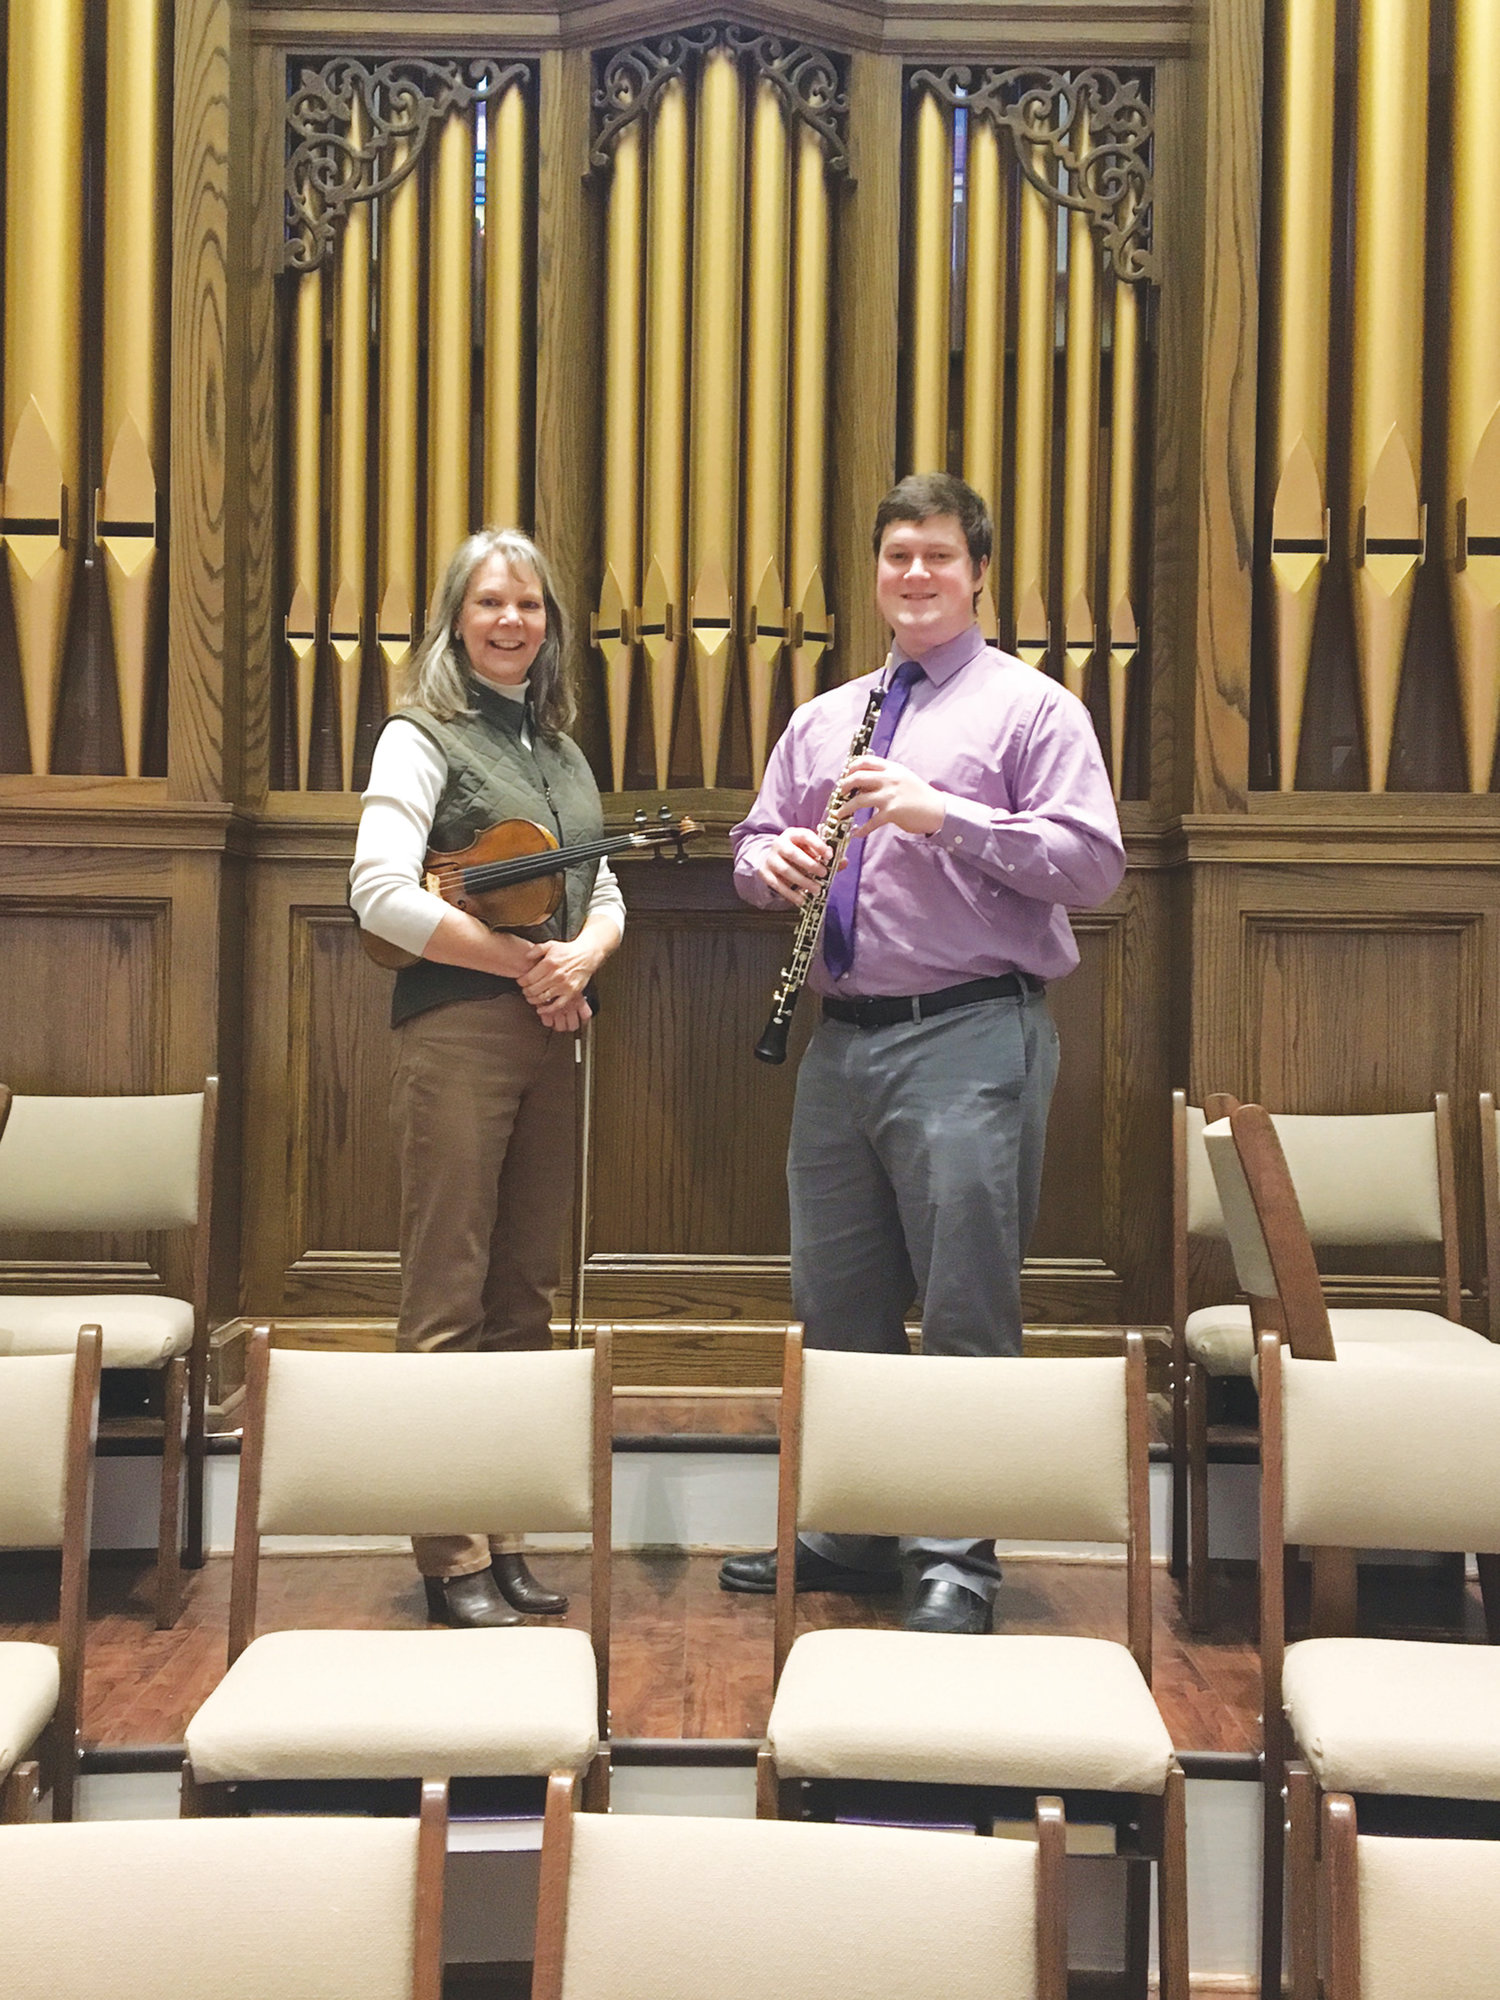 PHOTO PROVIDED  Lauren Decker, violin, and Alex Beaton, oboe, will perform Meditation from Thais and Telemann's Sonata in a minor, respectively, during March 10's An Afternoon of Sacred Music presented by the Woman's Afternoon Music Club at First Presbyterian Church.